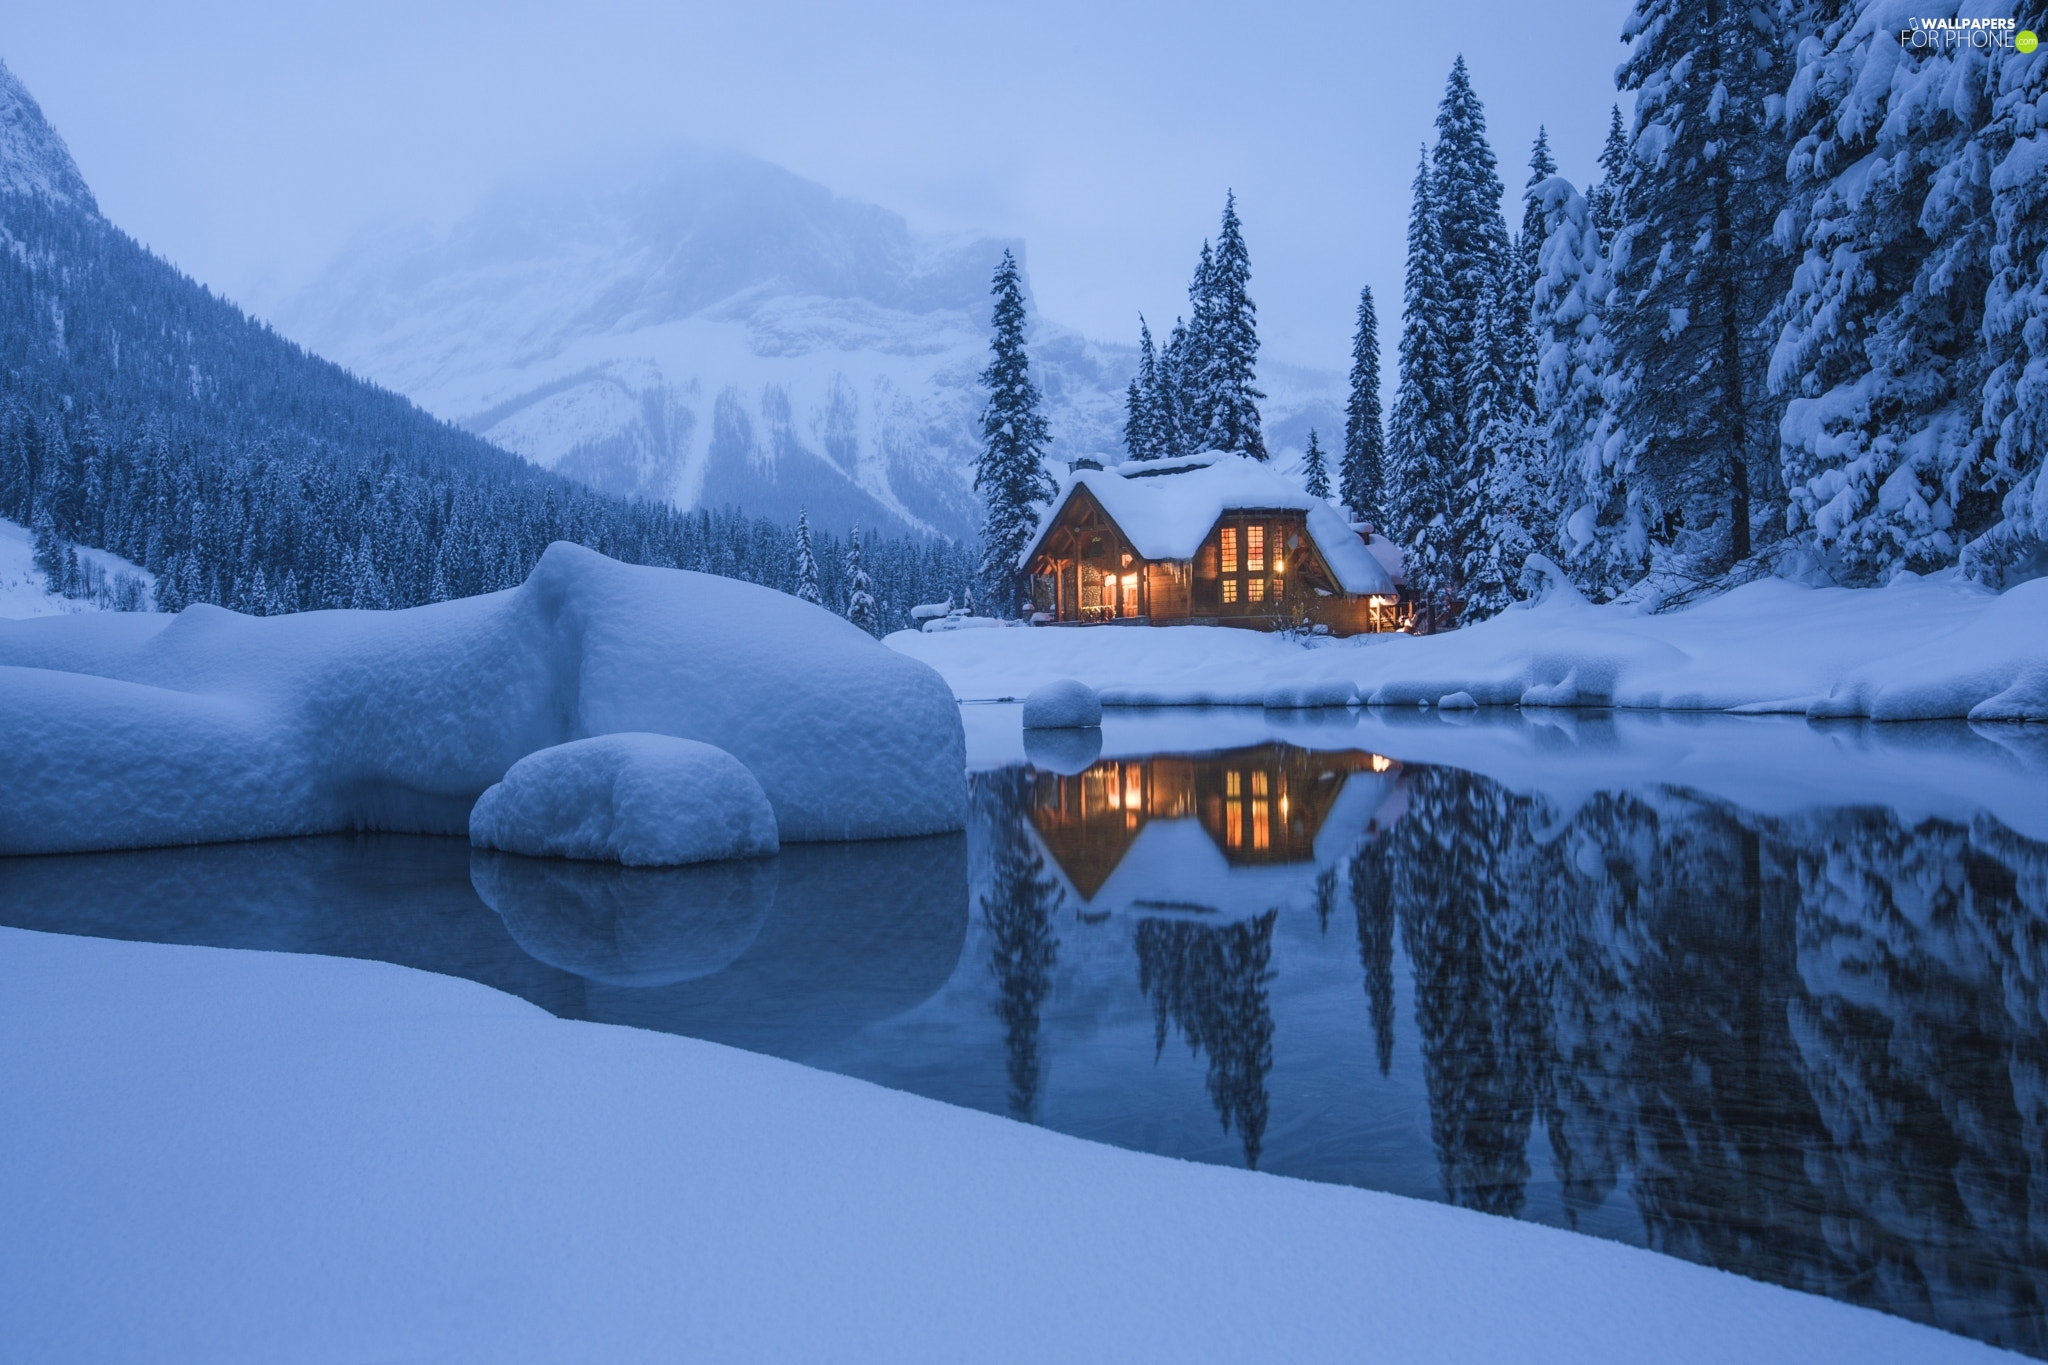 clouds, Fog, house, trees, snow, winter, Mountains, Yoho National Park, Canada, viewes, Emerald Lake, lake